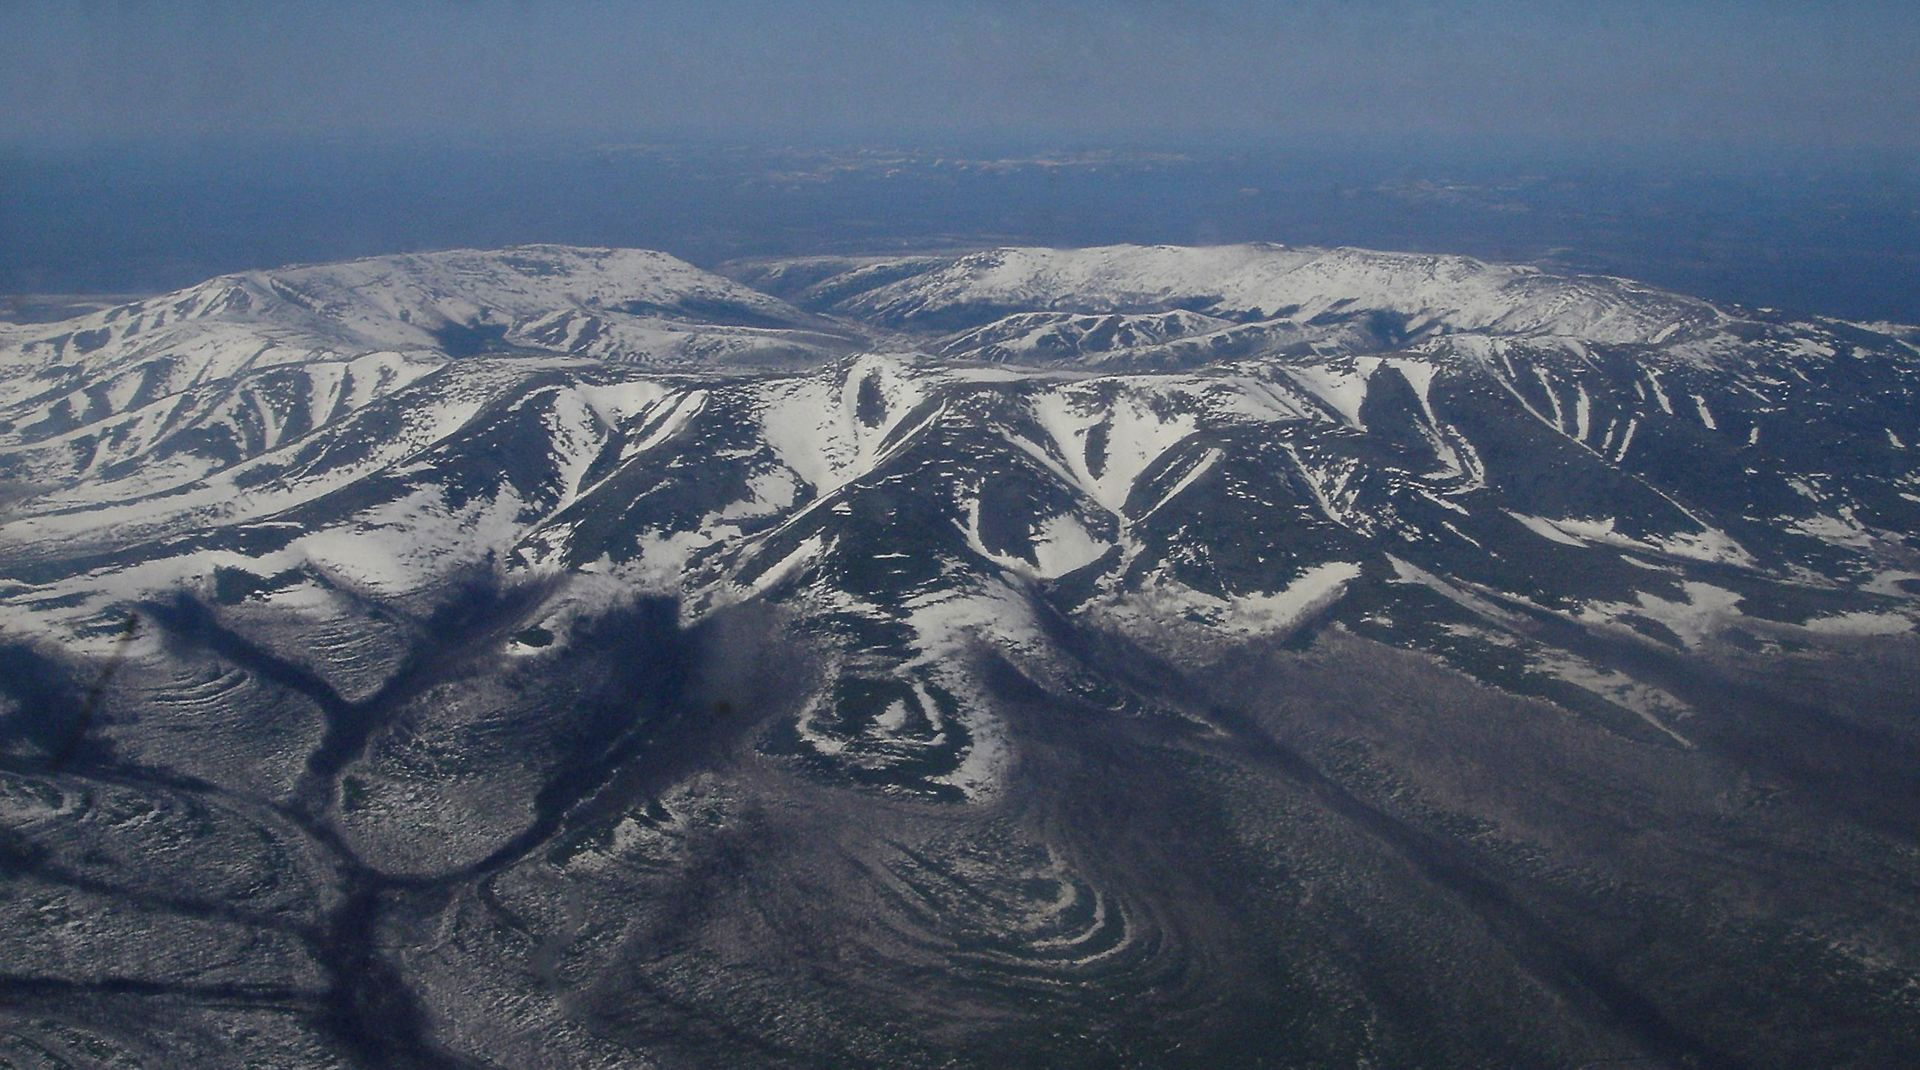 Kondyor Massif viewed from a helicopter